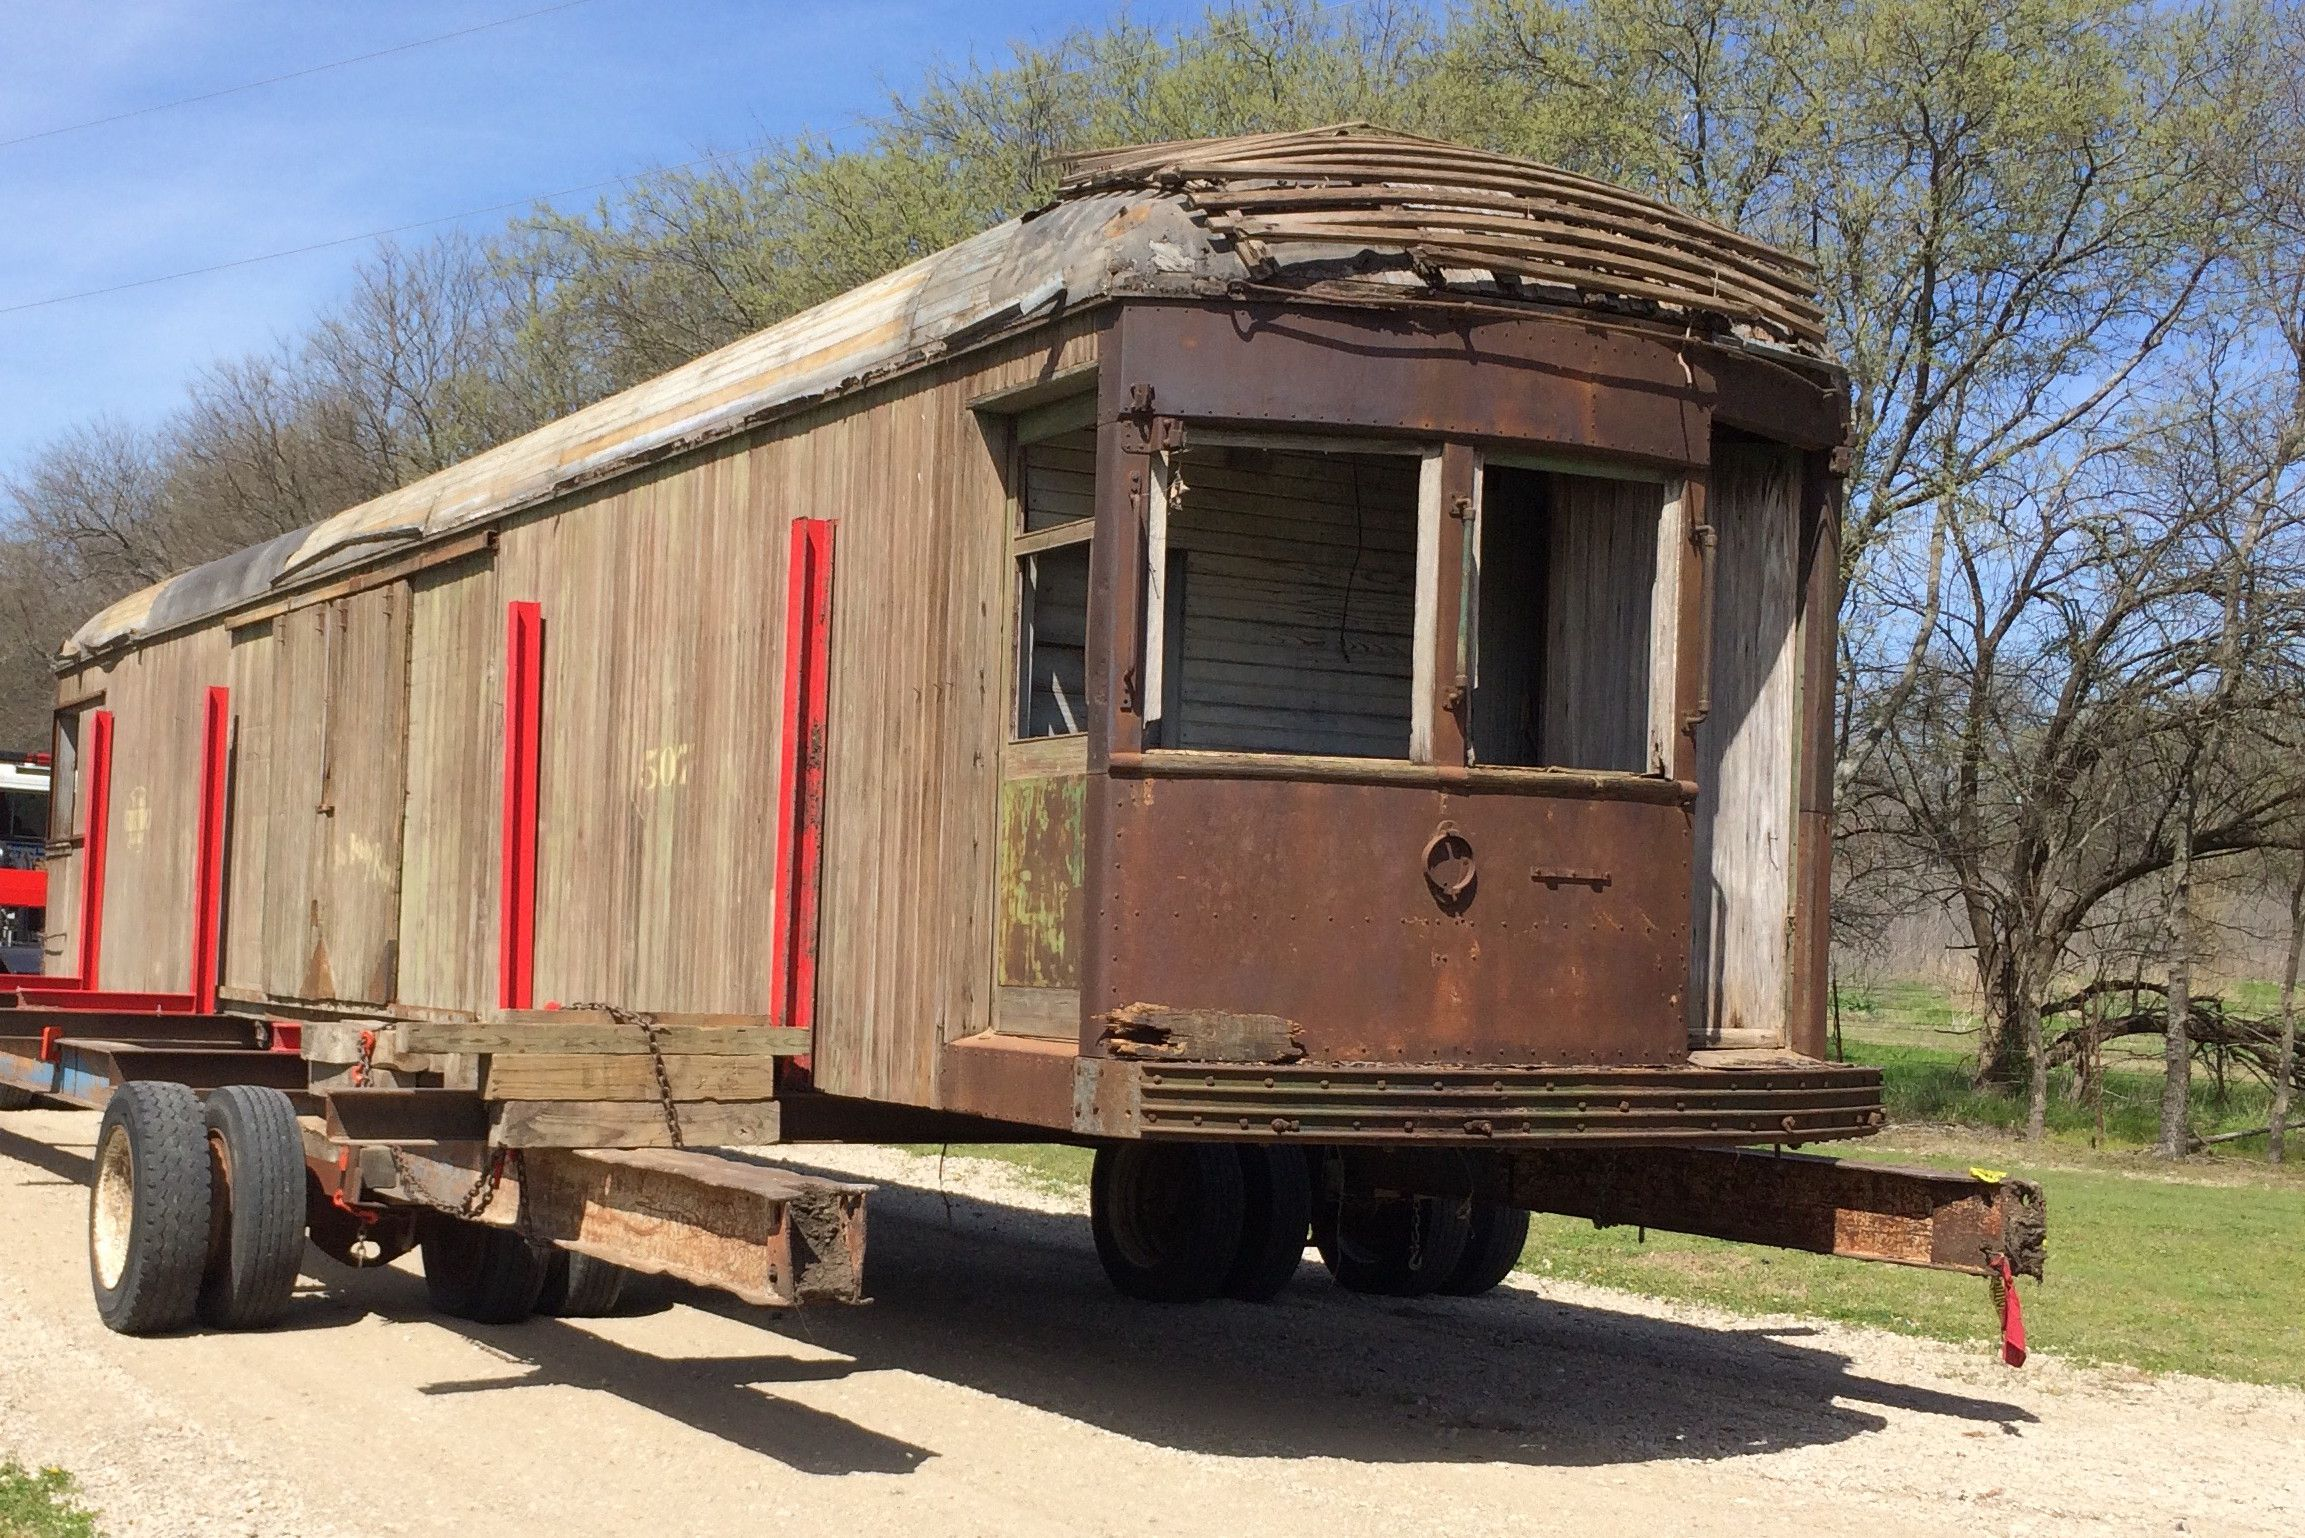 Interurban Freight Car Restoration